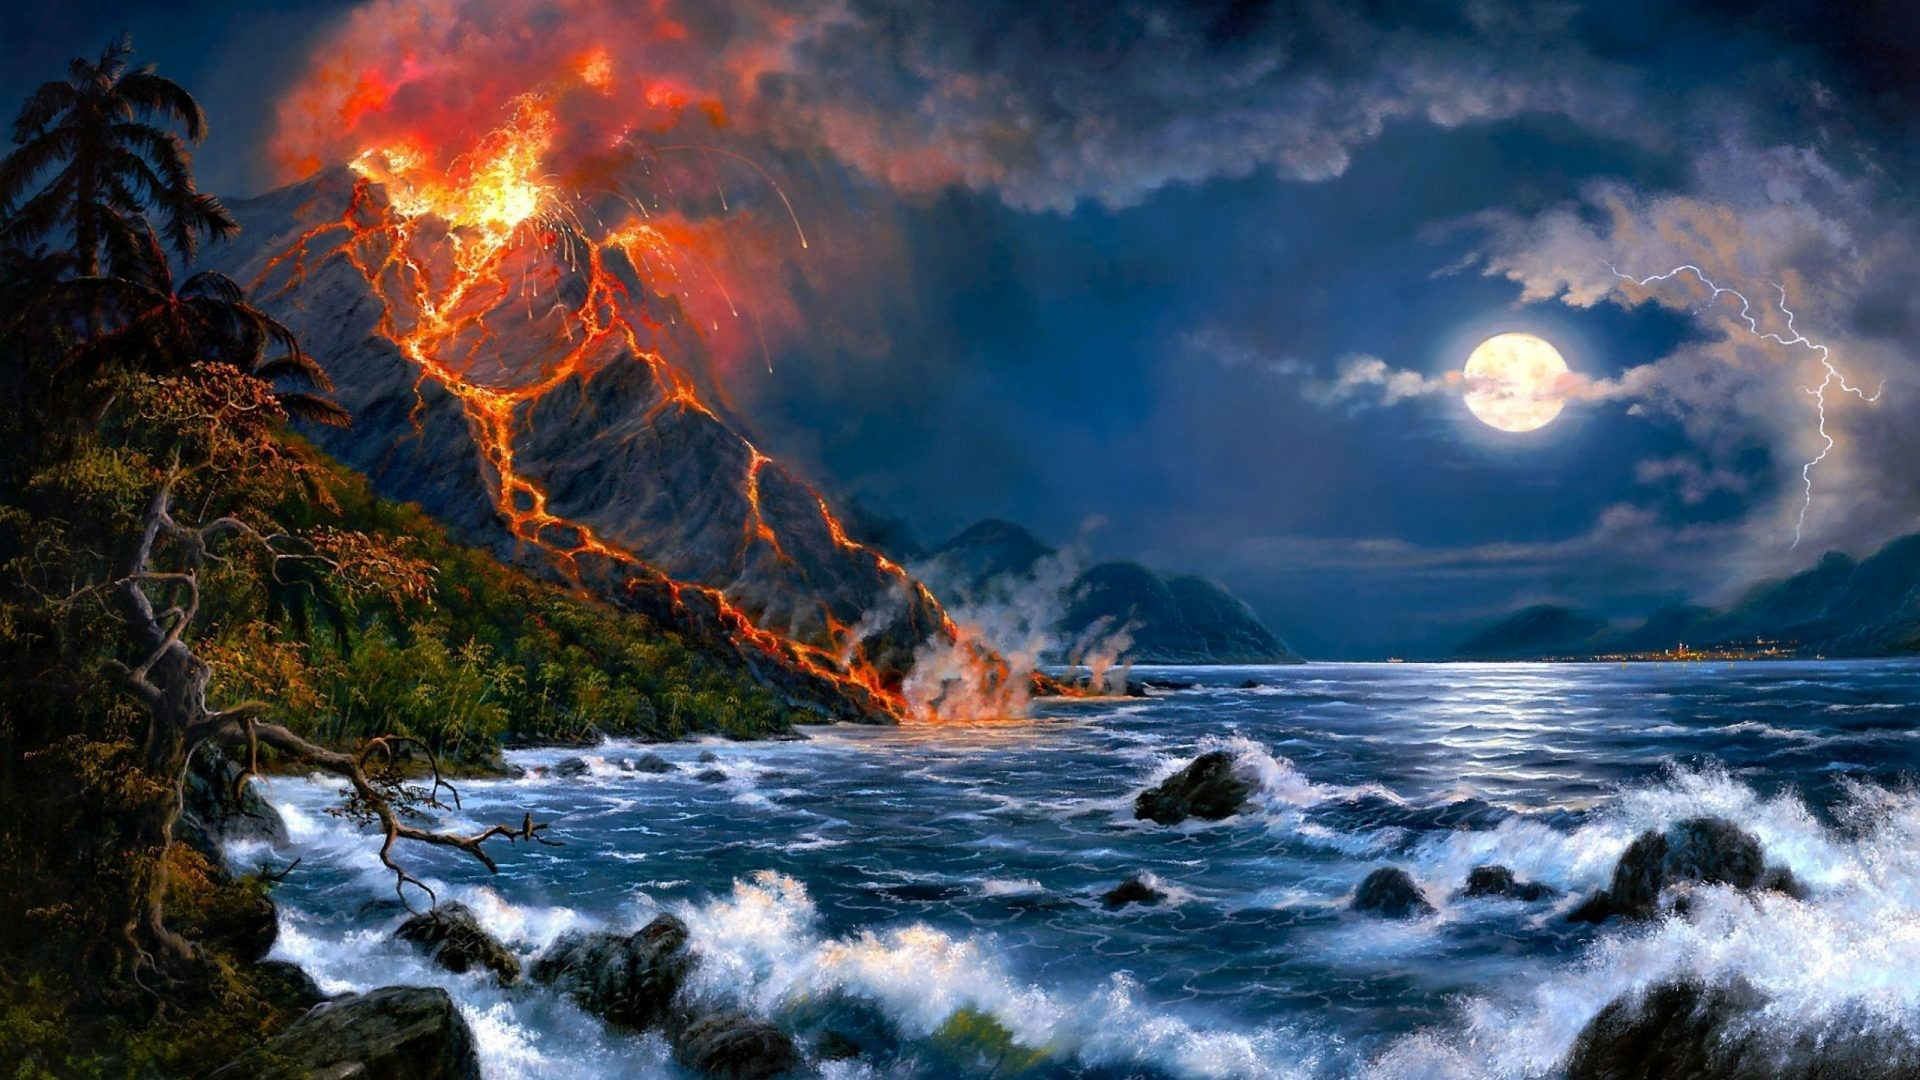 January 6, 2017 – Eruption Sea Scenery Wave Beautiful Force Art Magnificent  Painting Clouds Volcanic